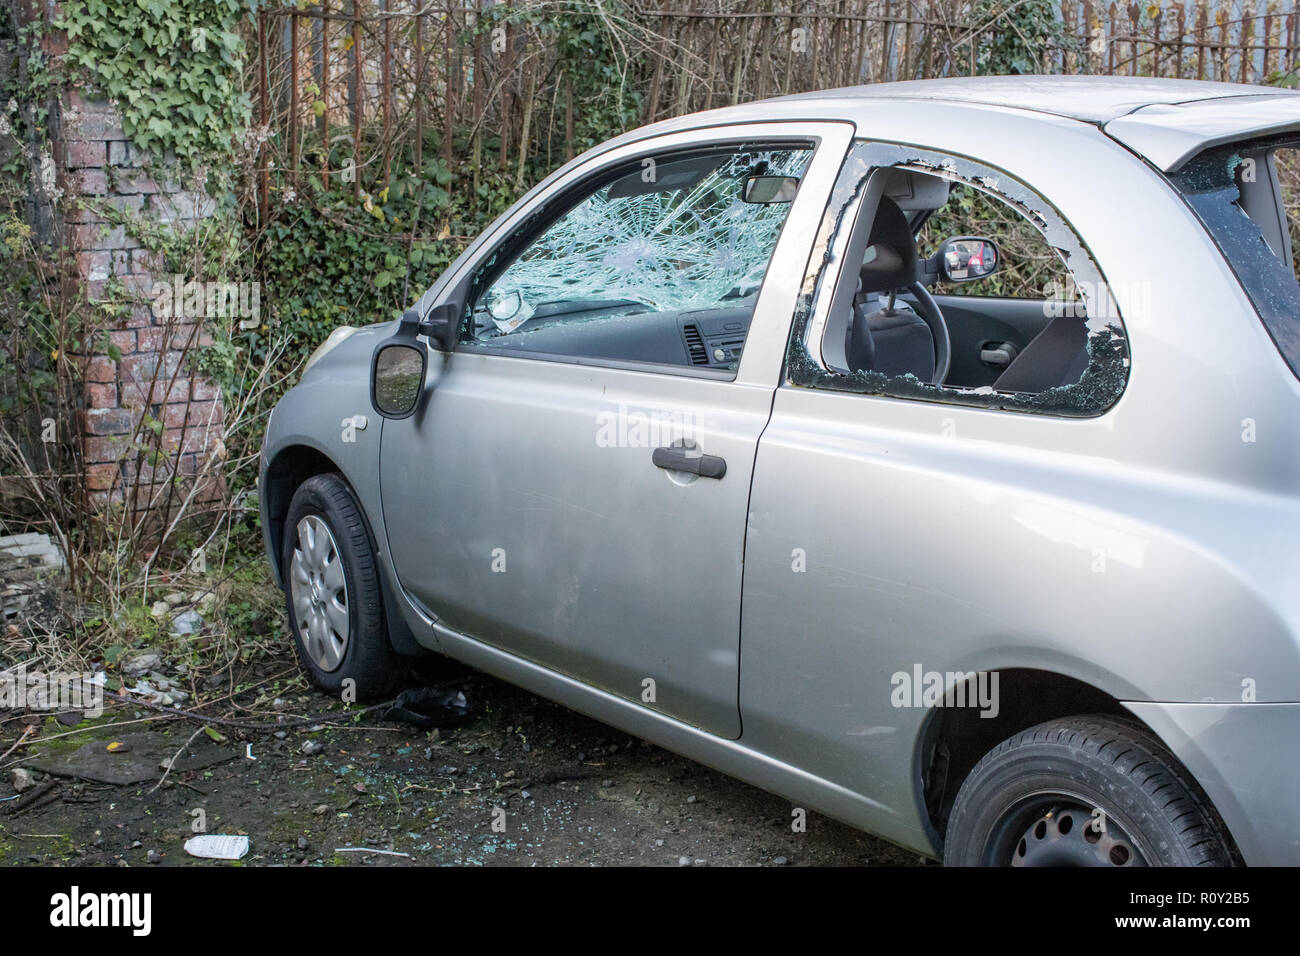 Dumped on the street a stolen car is left vandalised and broken with smashed glass and the wing mirror hanging off. - Stock Image